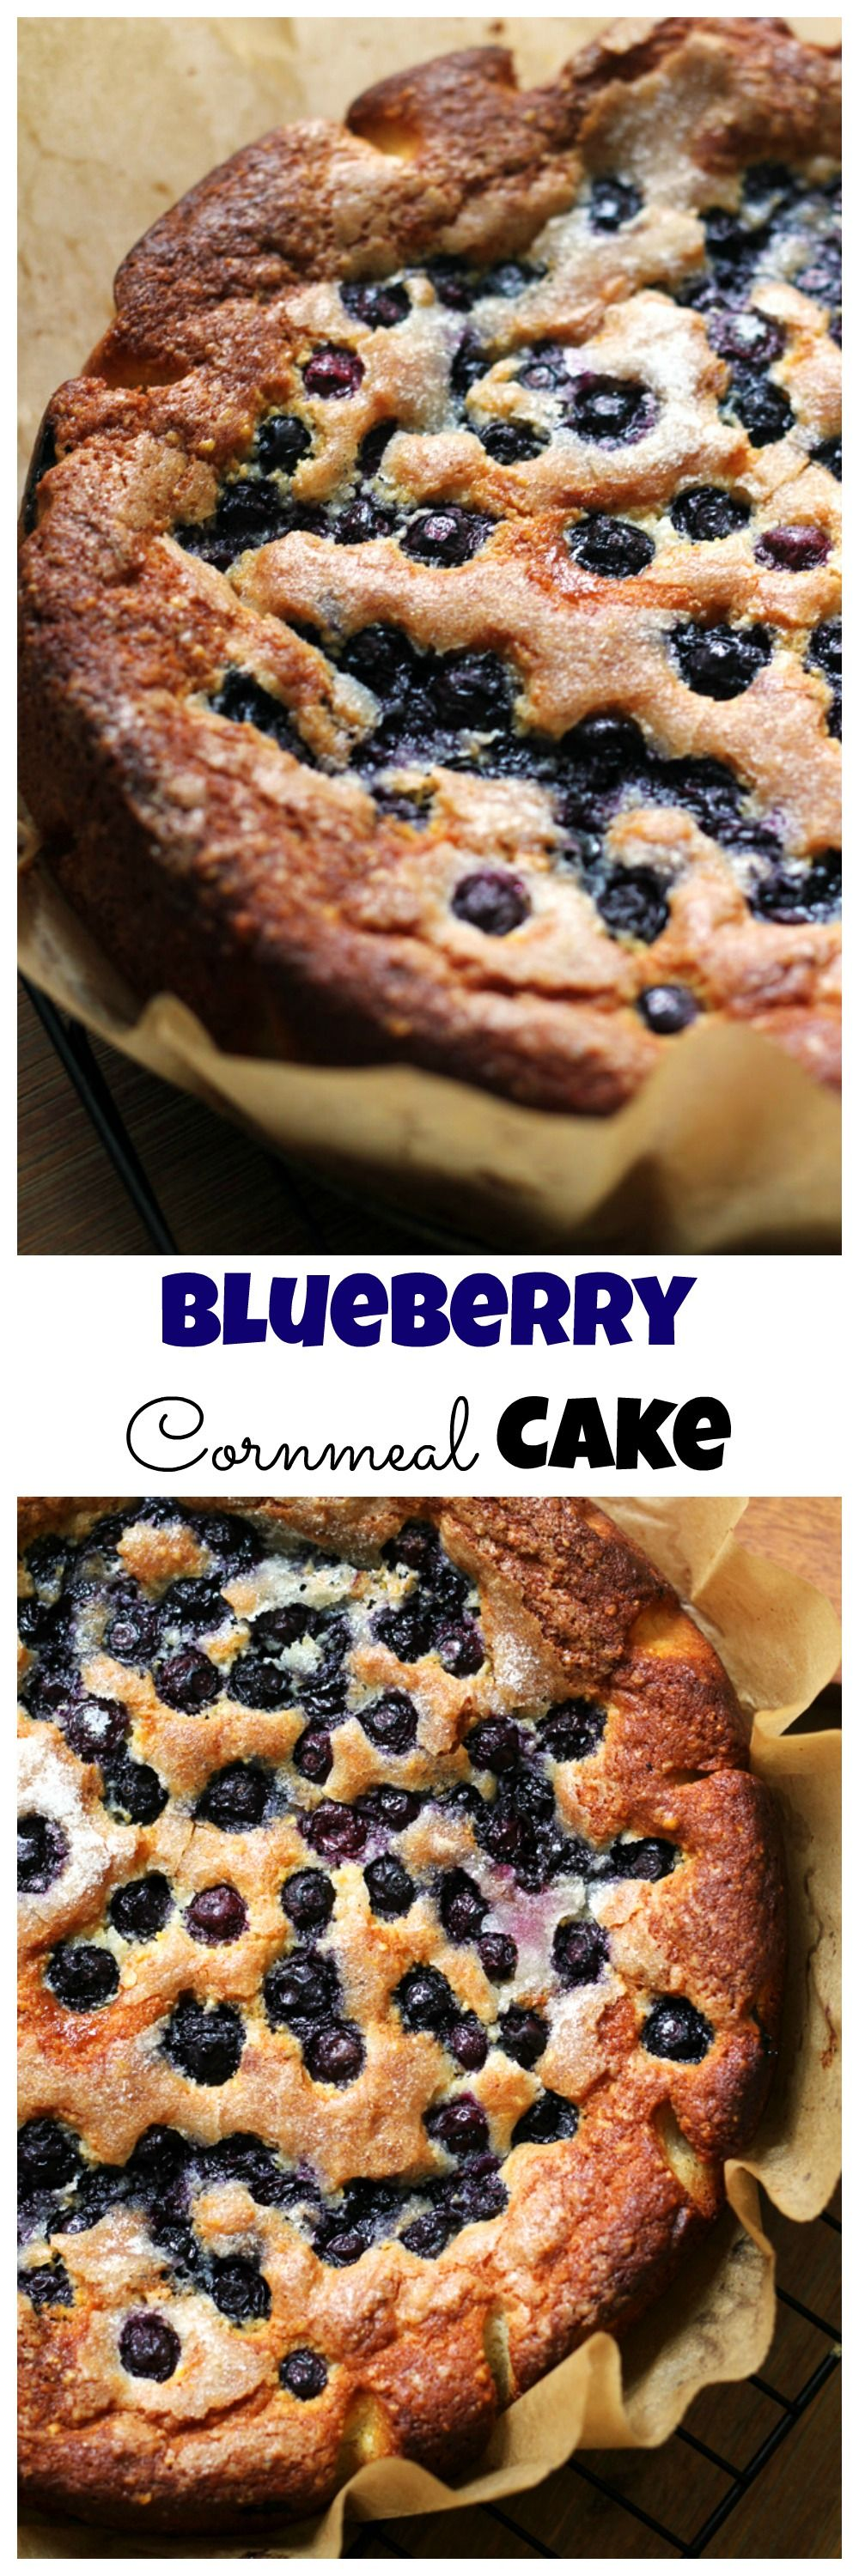 Simple, but delicious, this blueberry cornmeal cake is a celebration of juicy summer berries.